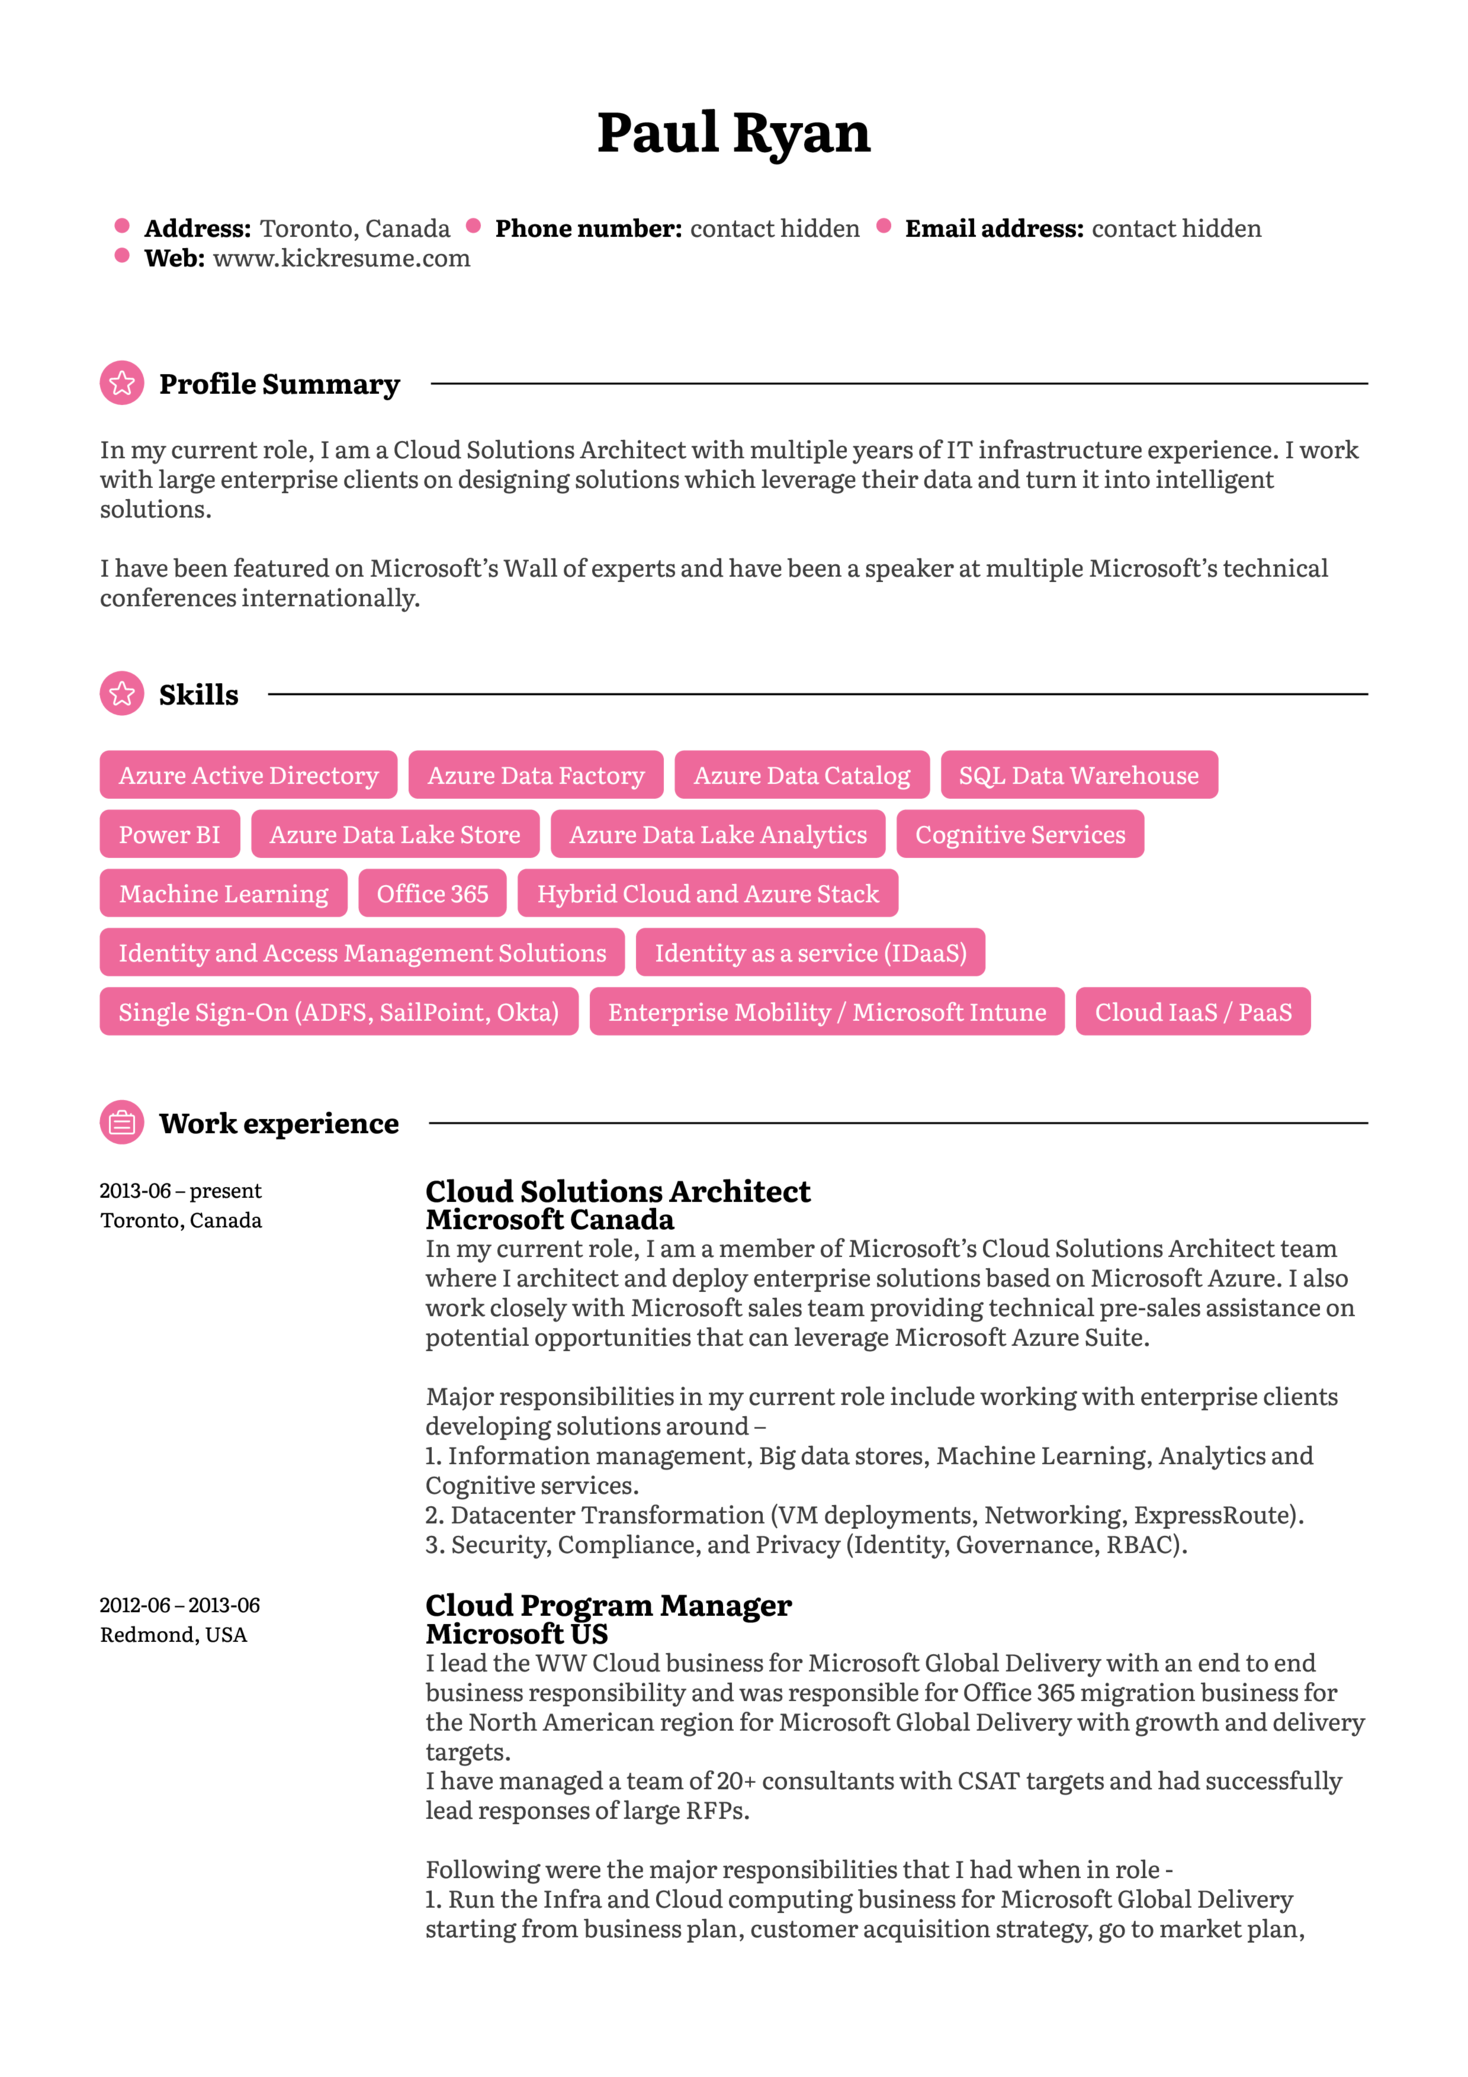 Microsoft Cloud Program Manager Resume Template